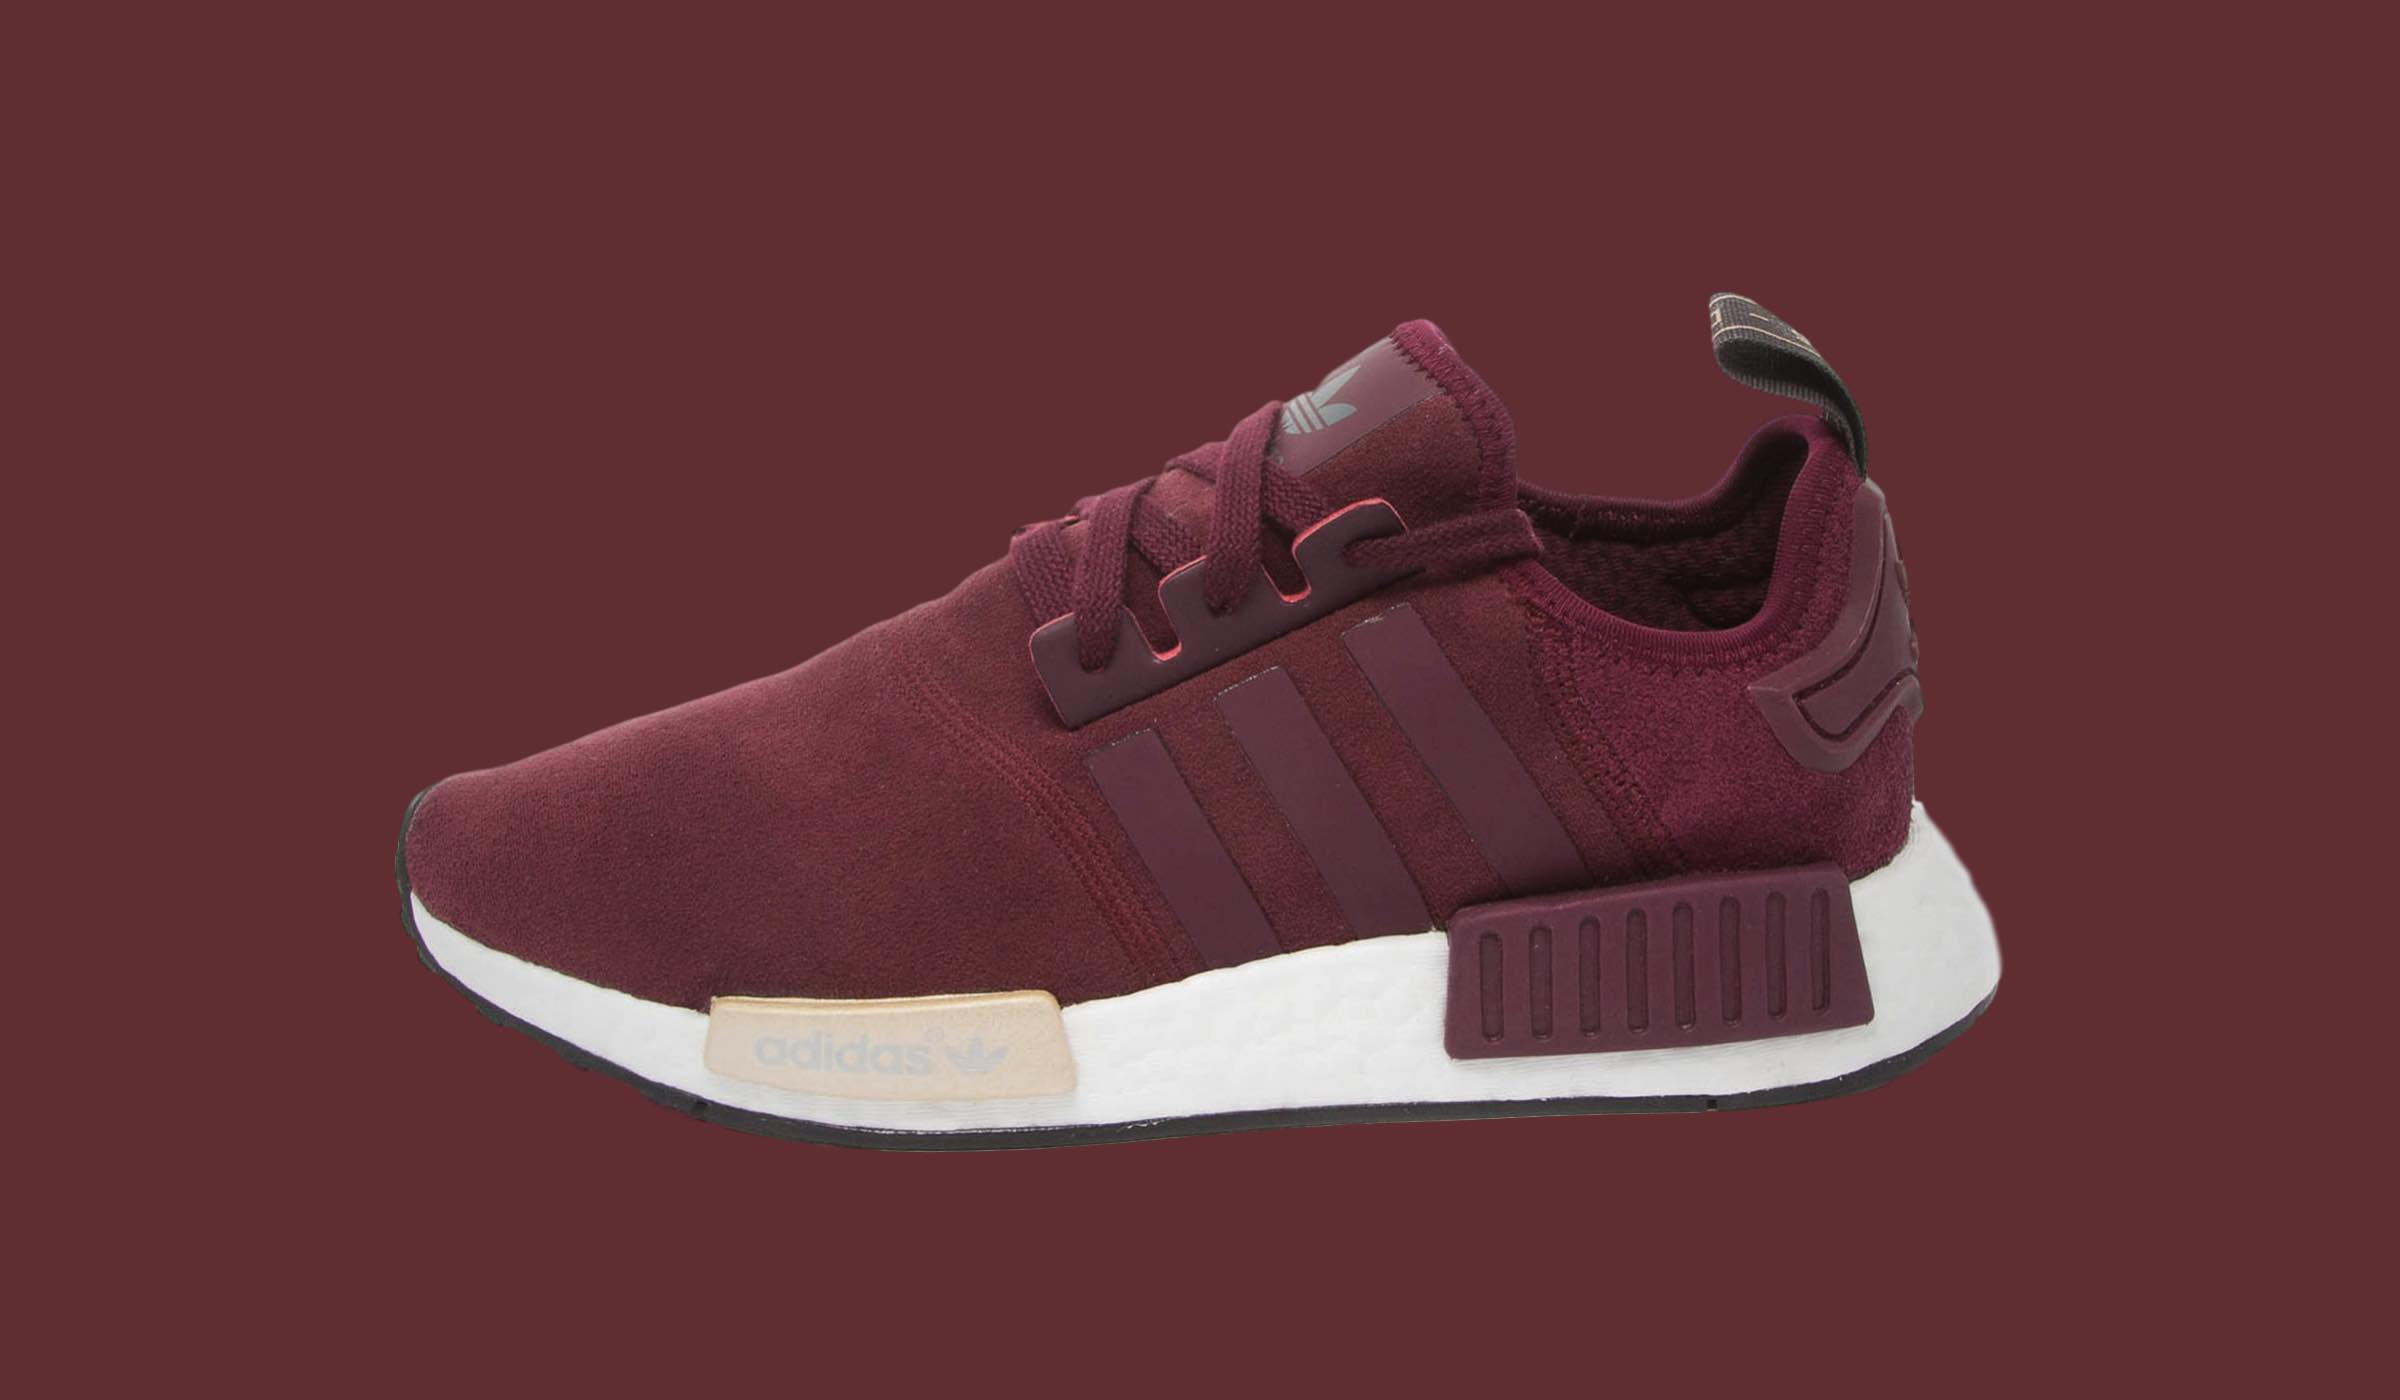 best sneakers ceaf7 4dc6c Adidas NMD Suede Burgundy adidasnmdwomensuk.co.uk